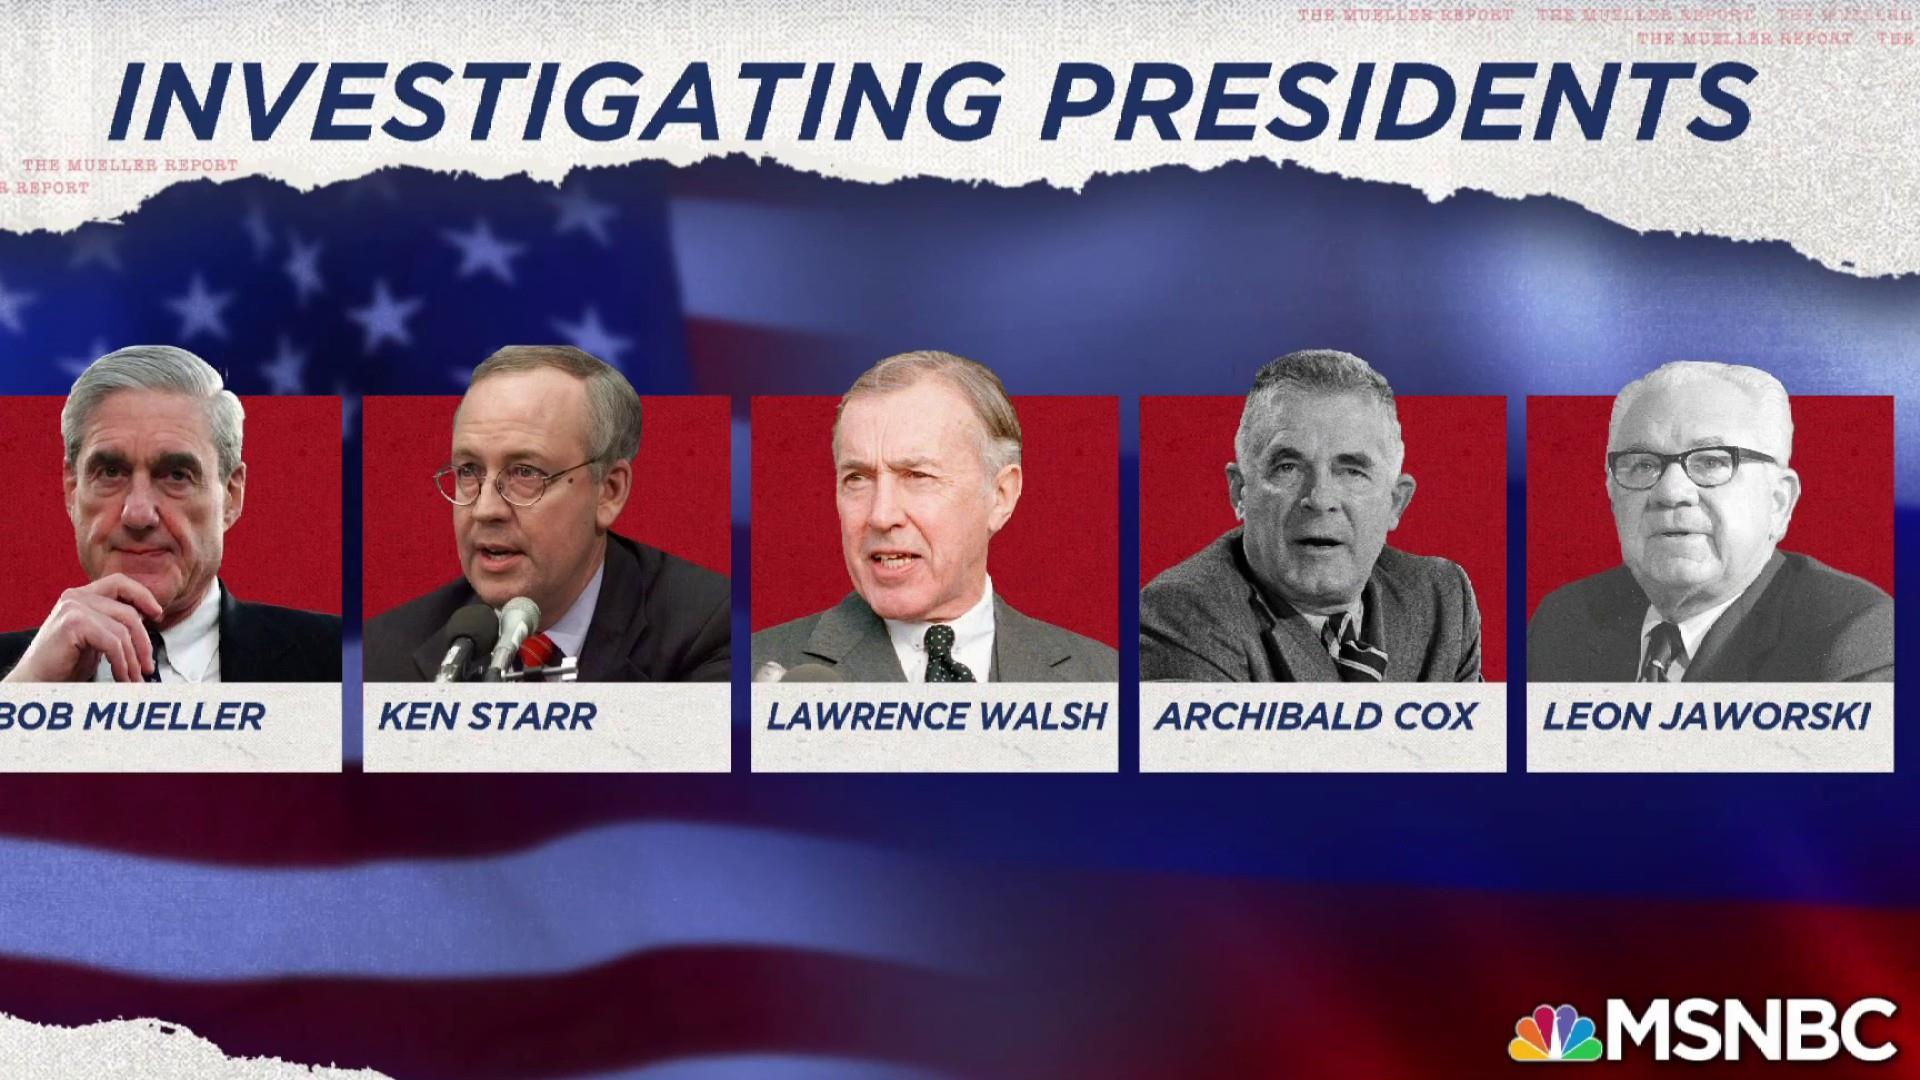 Watch: how Mueller's predecessors confronted presidents